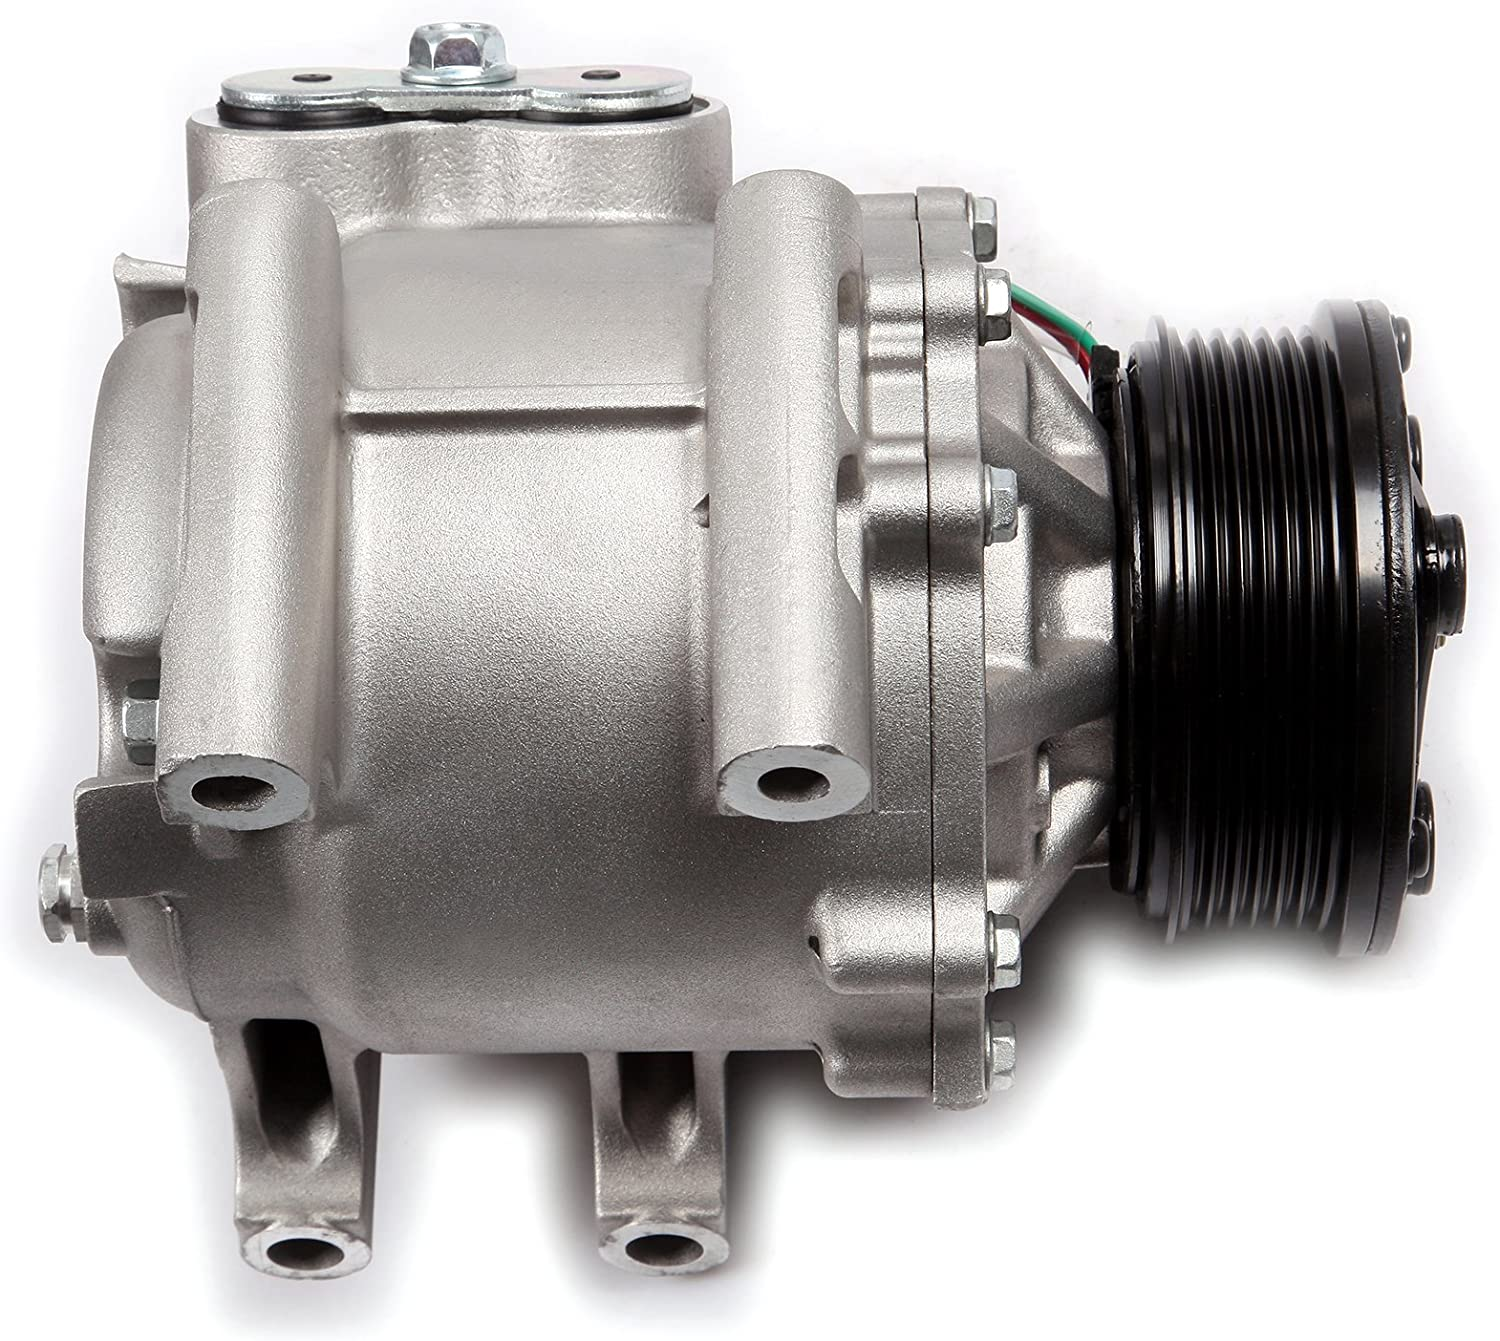 ECCPP A C Ranking TOP7 Compressor fit for B-uick 2002-2009 Envoy Challenge the lowest price of Japan ☆ Rainier GMC